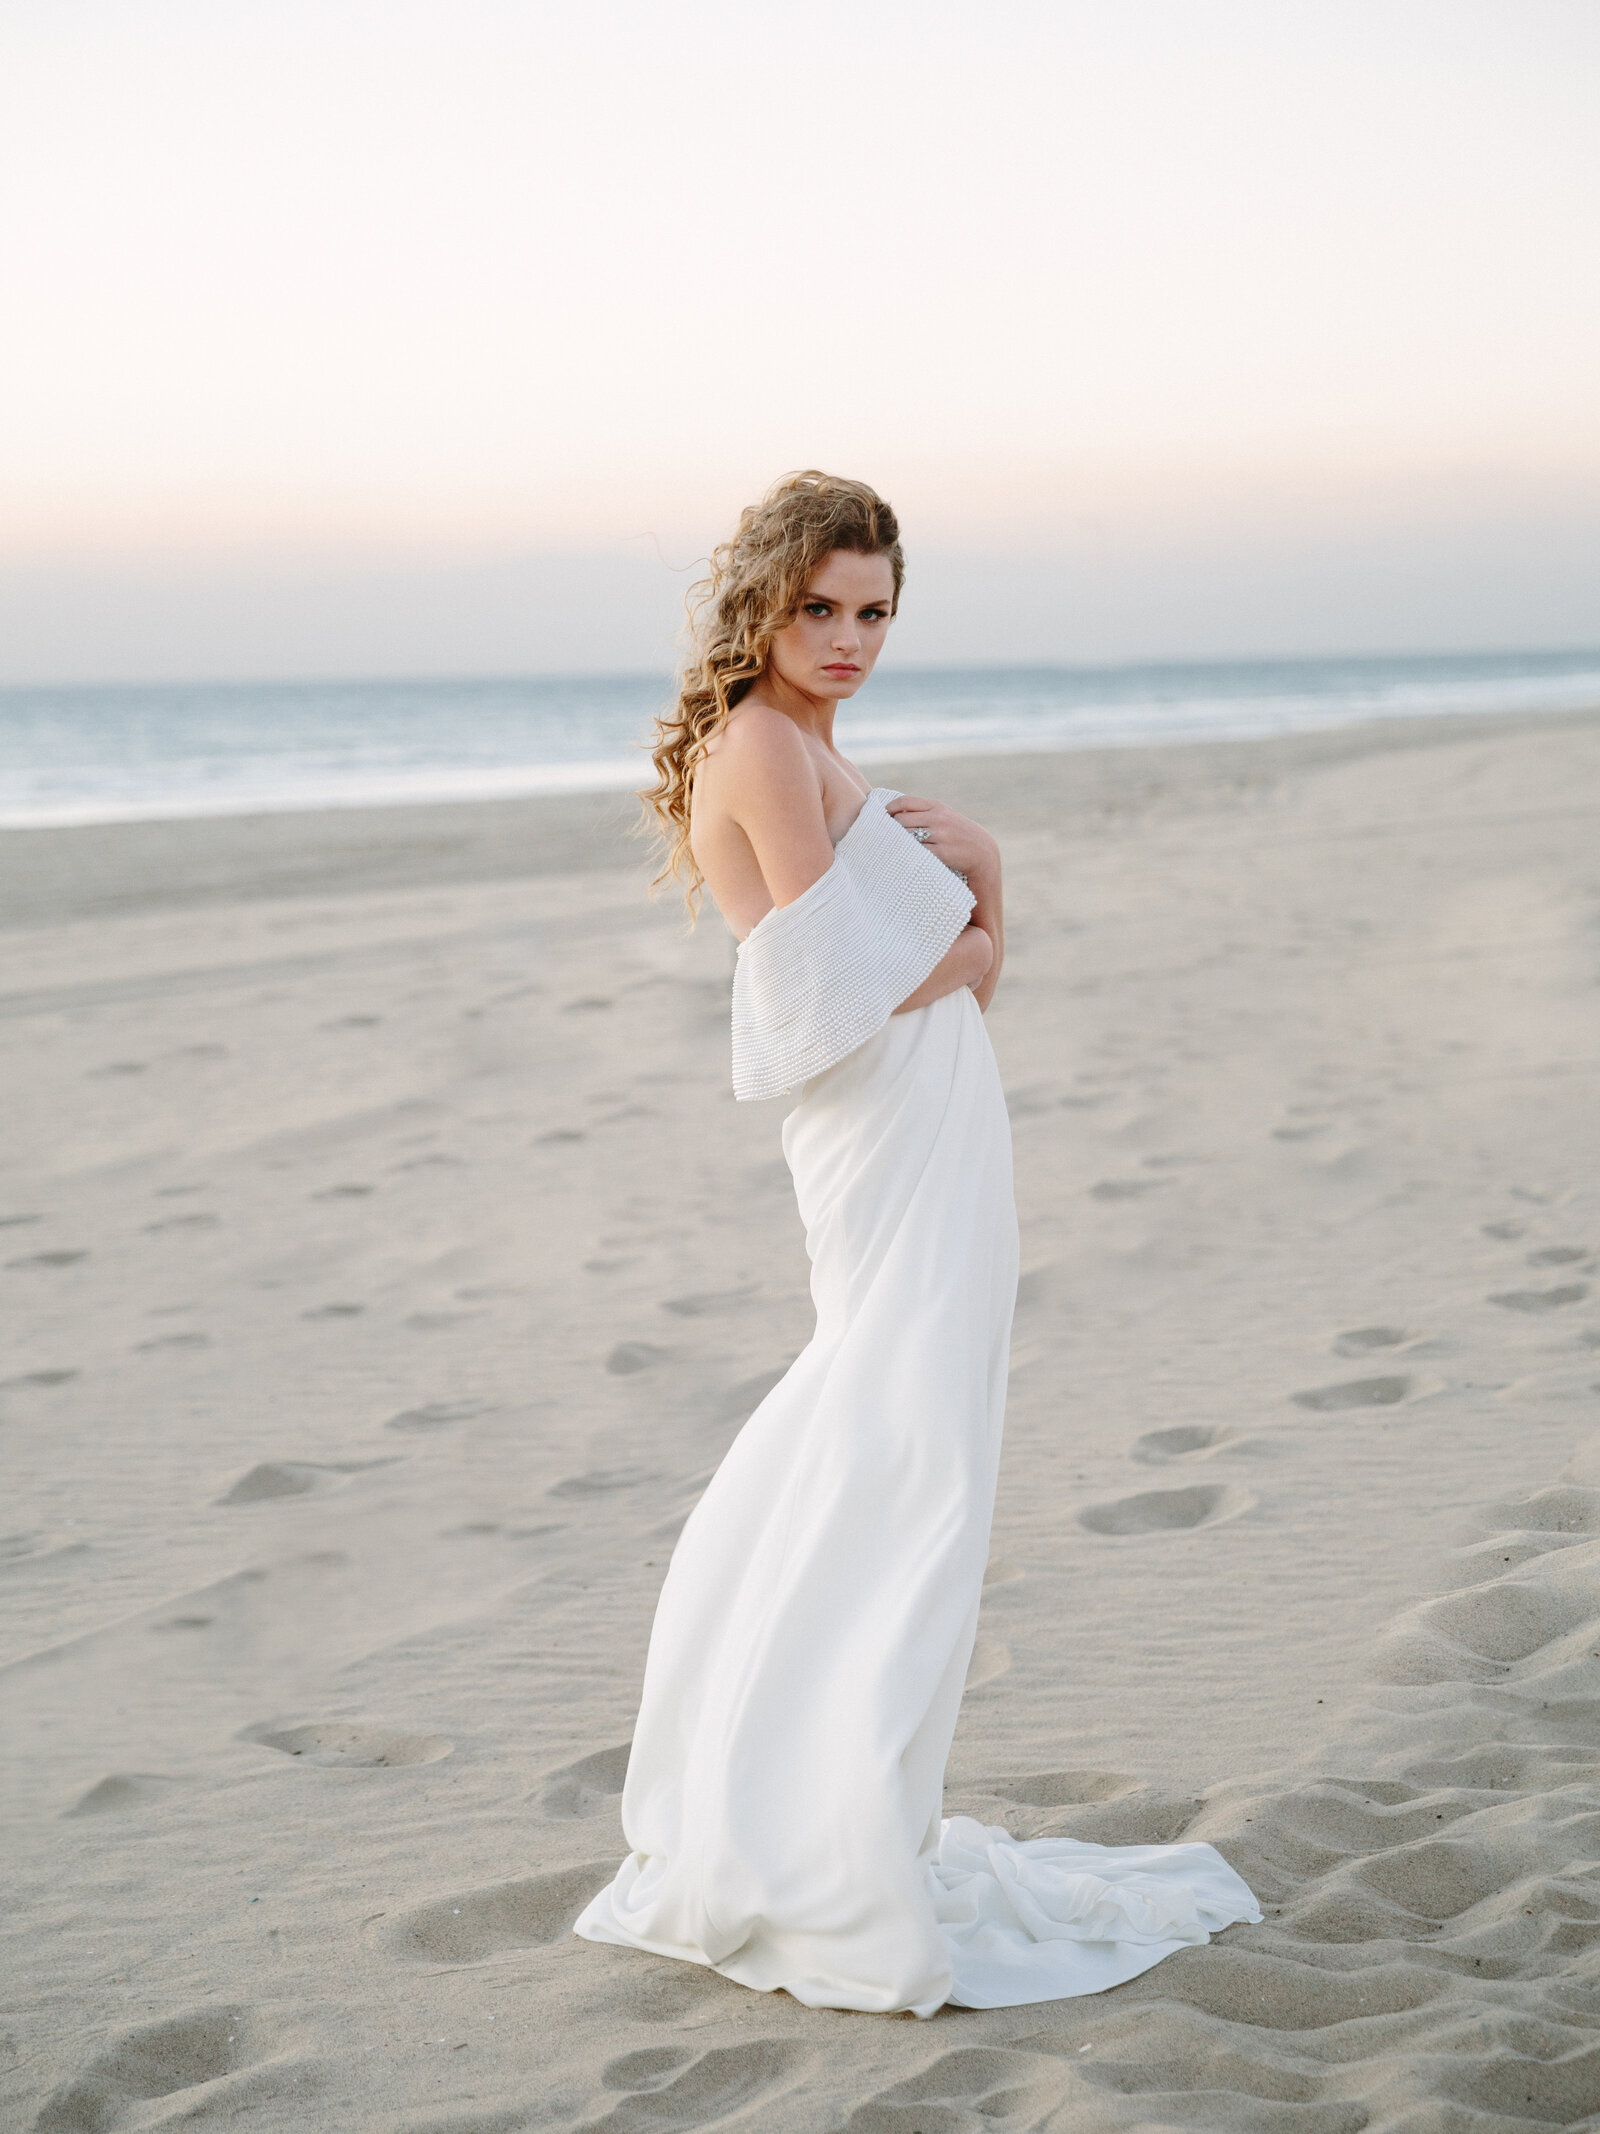 051-larissa-cleveland-editorial-fashion-wedding_photographer-san-francisco-carmel-napa-california-LCphoto-winter-beach-socal-001